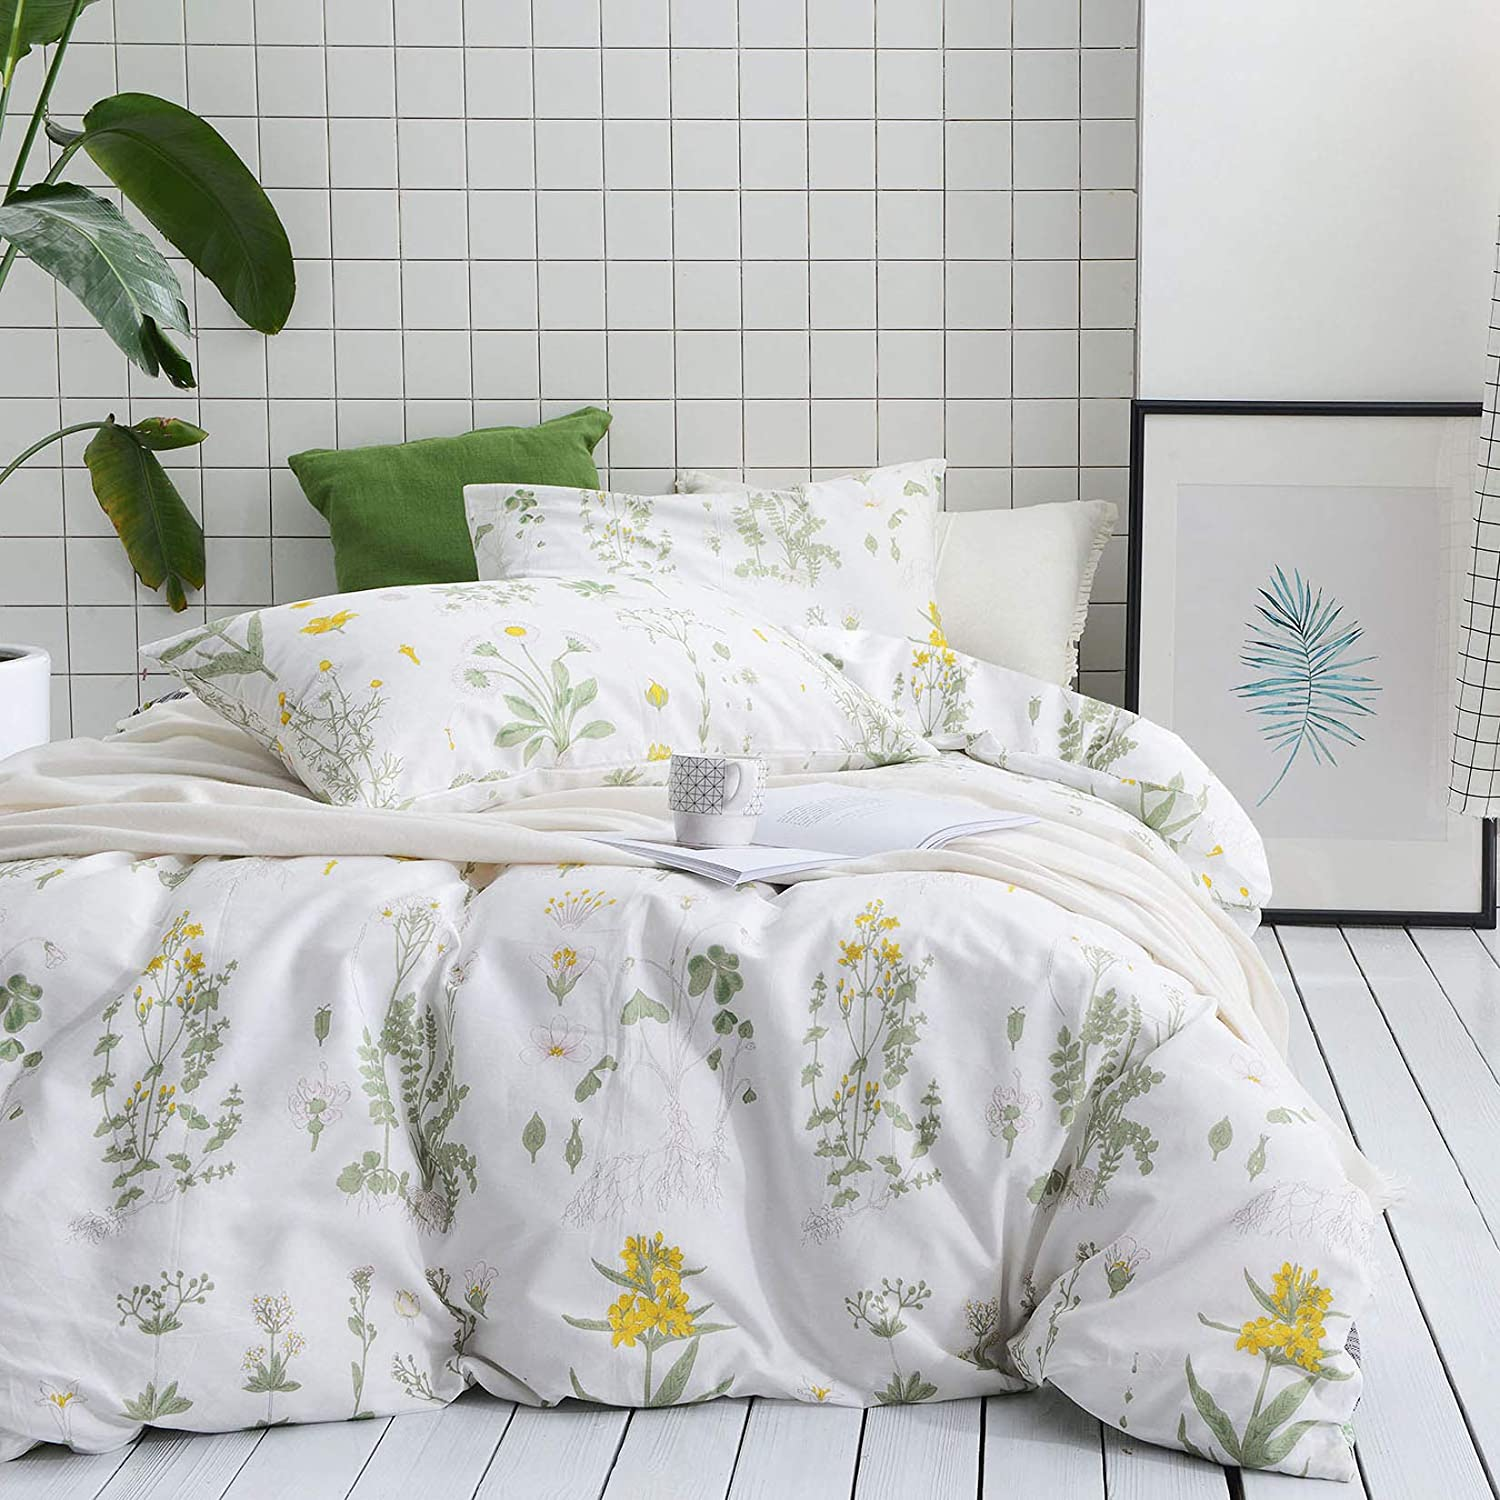 Wake In Cloud - Botanical Comforter Set, 100% Cotton Fabric with Soft Microfiber Fill Bedding, Yellow Flowers and Green Leaves Floral Garden Pattern Printed